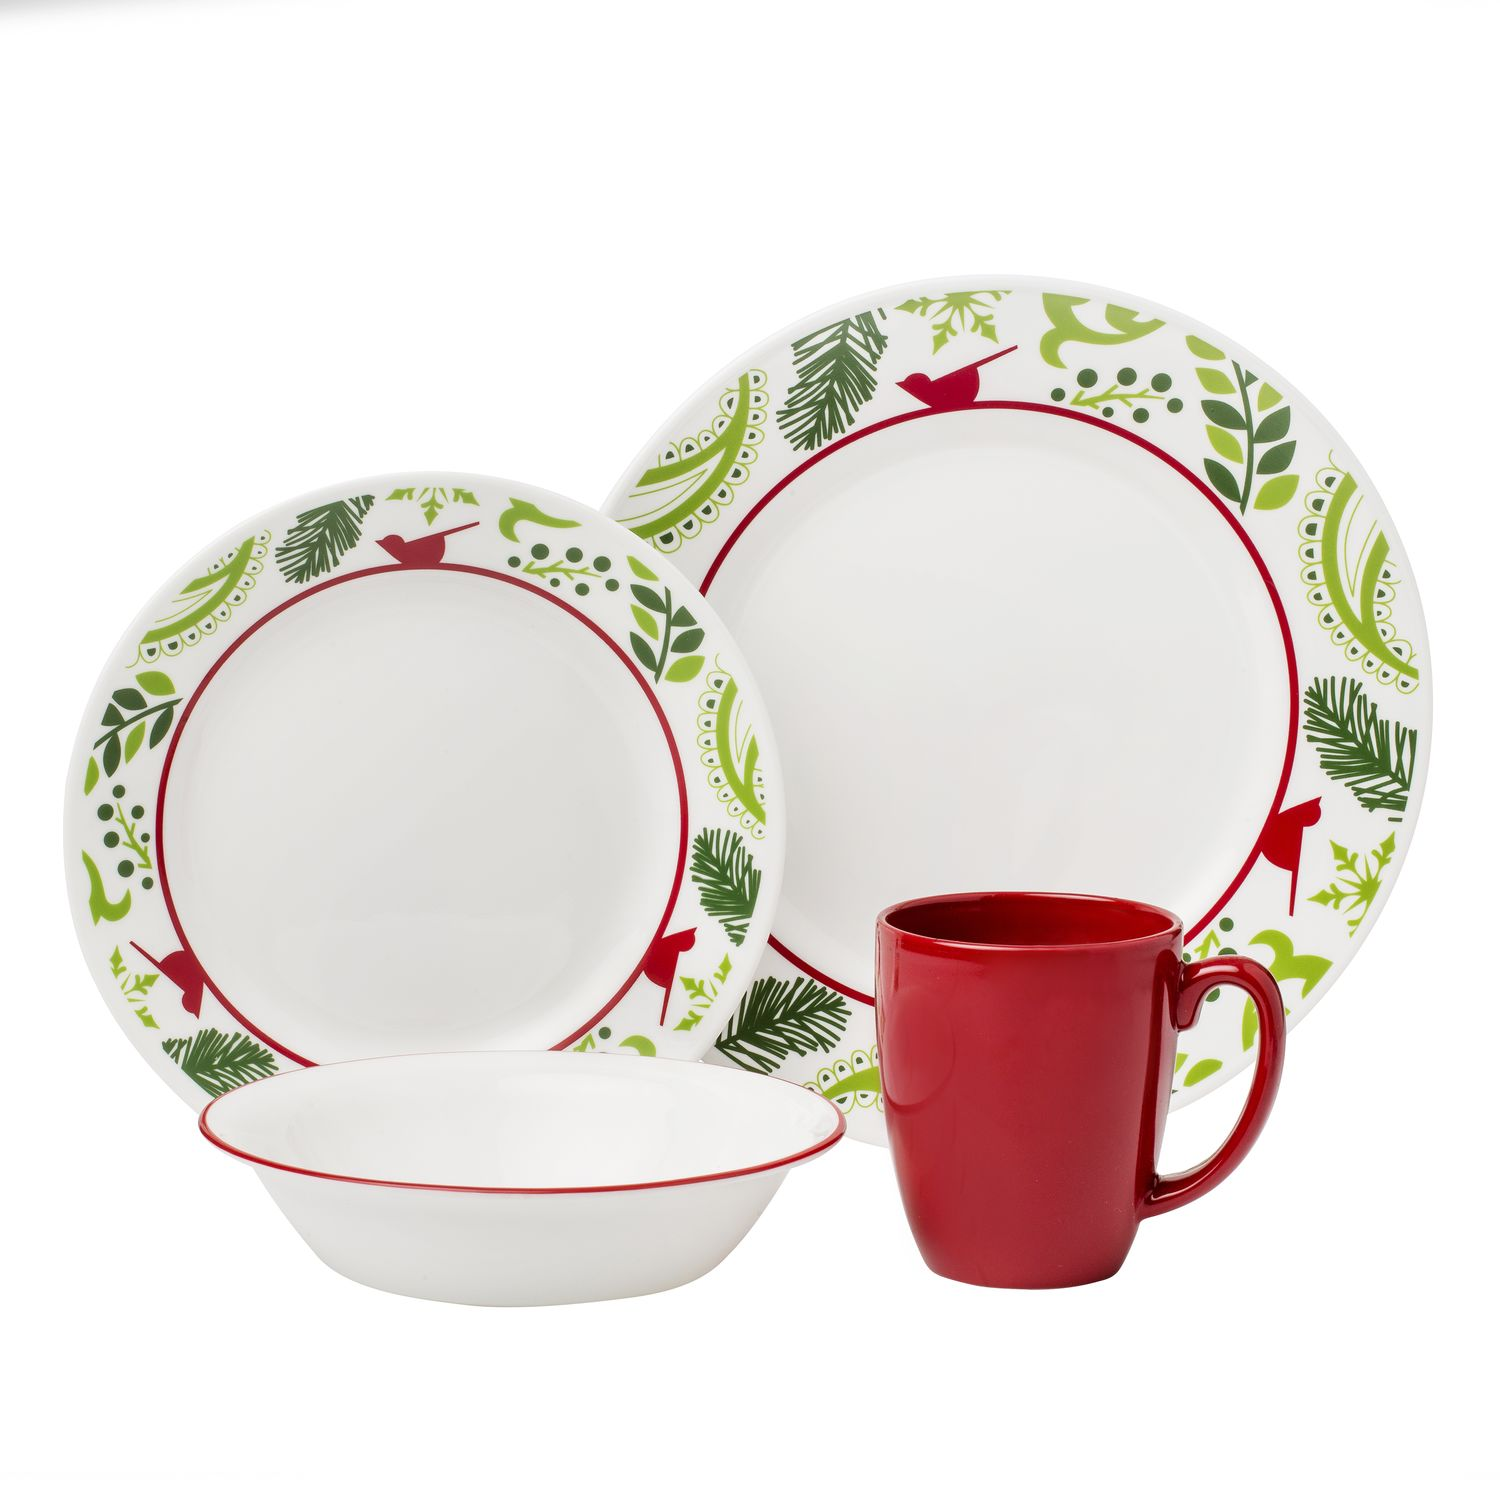 Impressions Birds u0026 Boughs 16-pc Dinnerware Set  sc 1 st  Designer Dinnerware & Impressions Birds u0026 Boughs 16-pc Dinnerware Set Review | Corelle ...